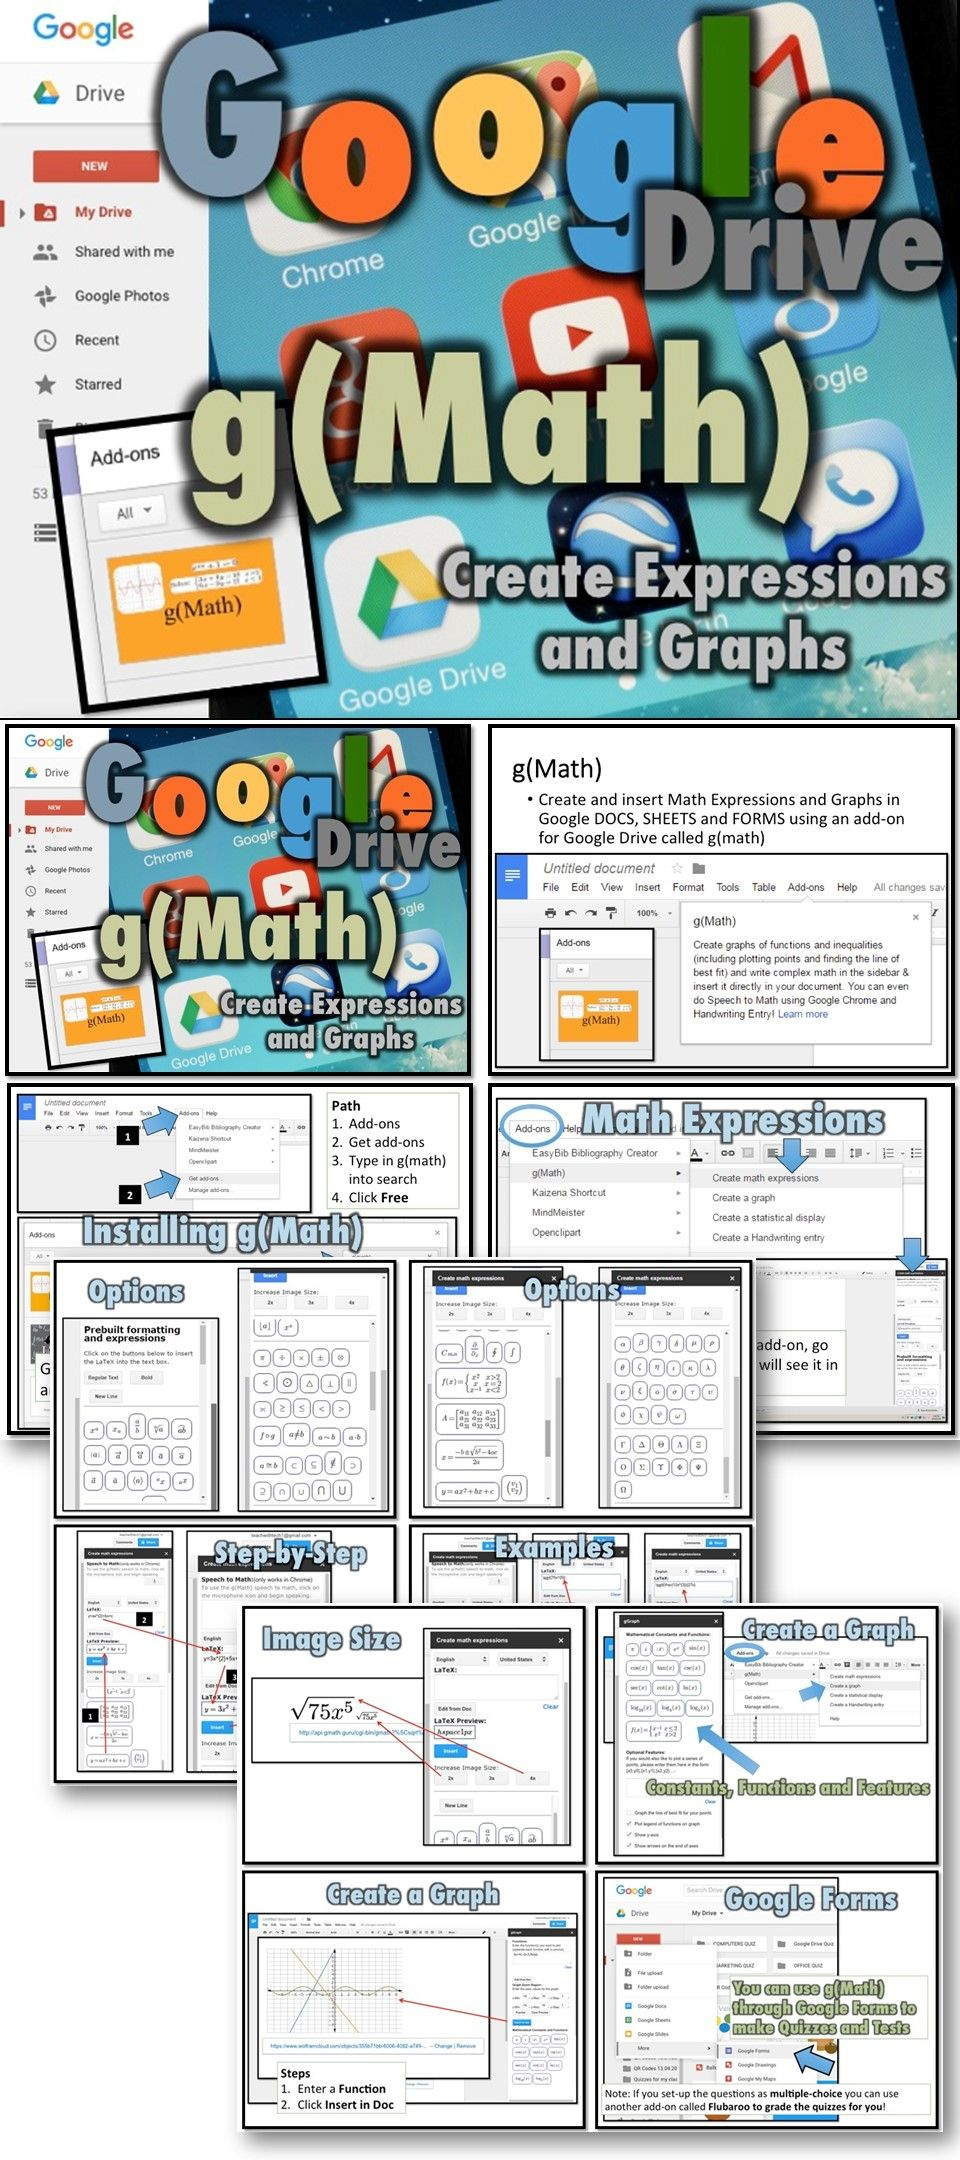 Create and insert Math Expressions and Graphs in Google DOCS, SHEETS ...